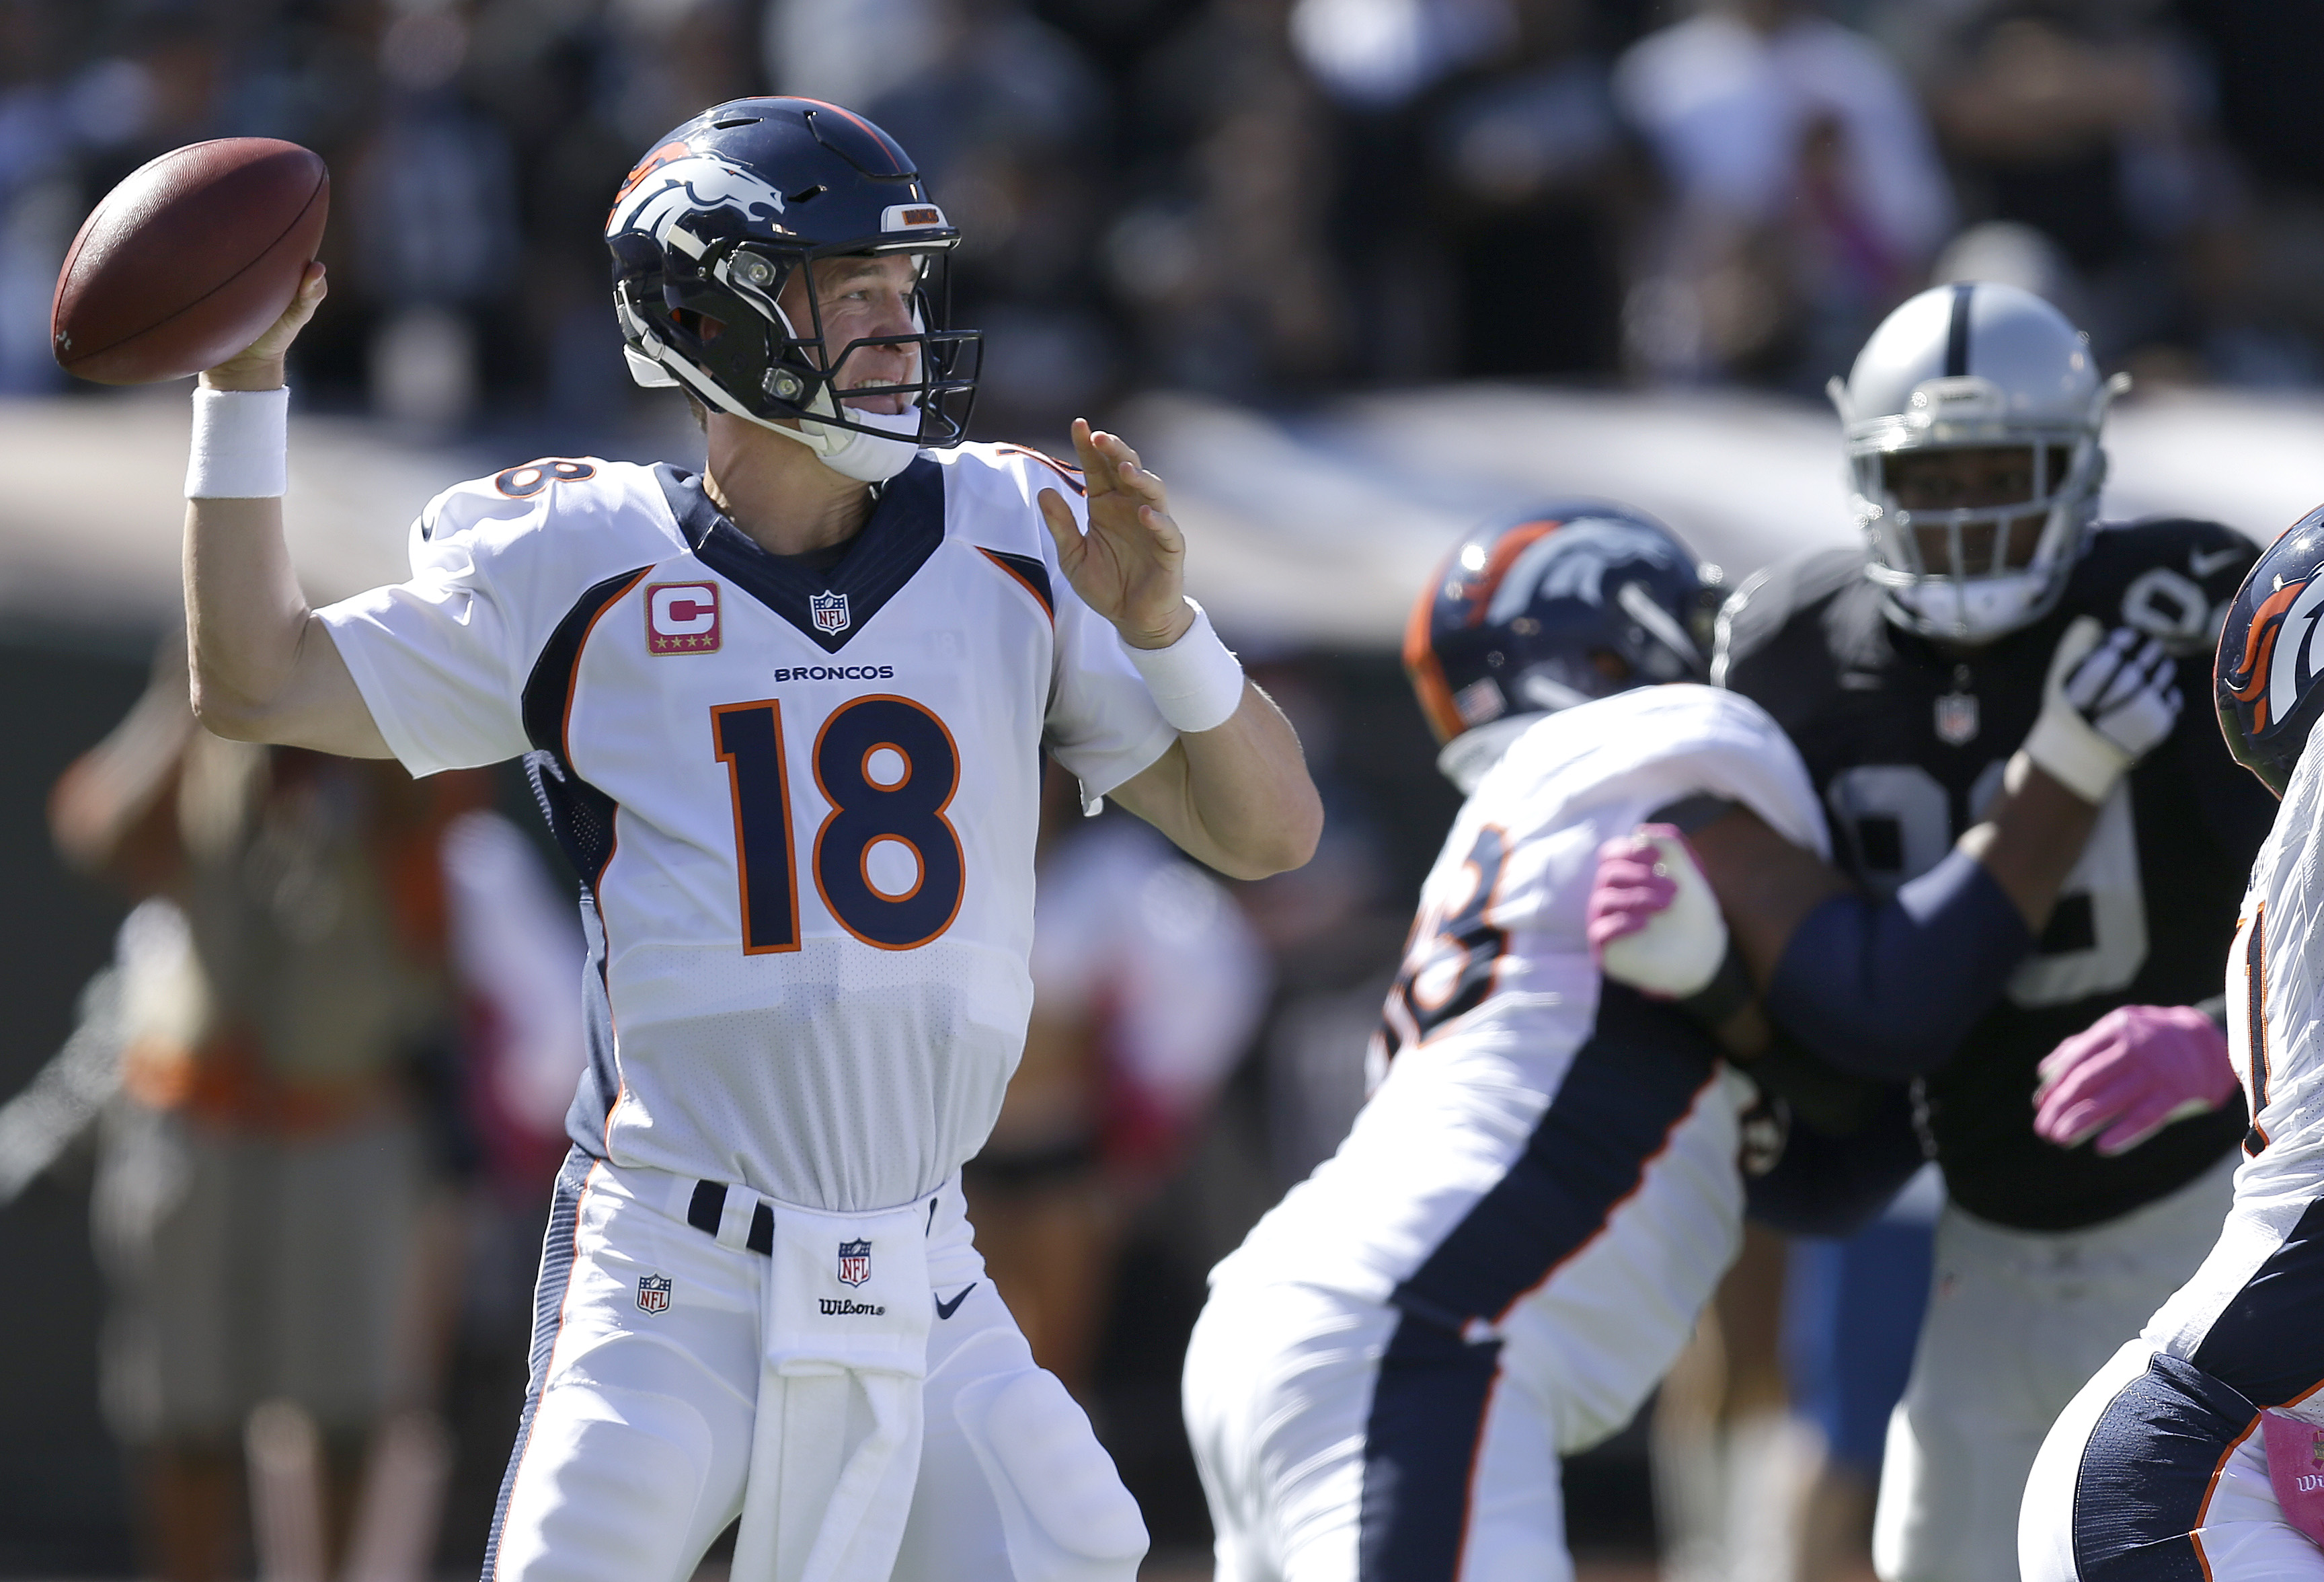 Denver Broncos quarterback Peyton Manning (18) passes against the Oakland Raiders during the first half of an NFL football game in Oakland, Calif., Sunday, Oct. 11, 2015. (AP Photo/Ben Margot)